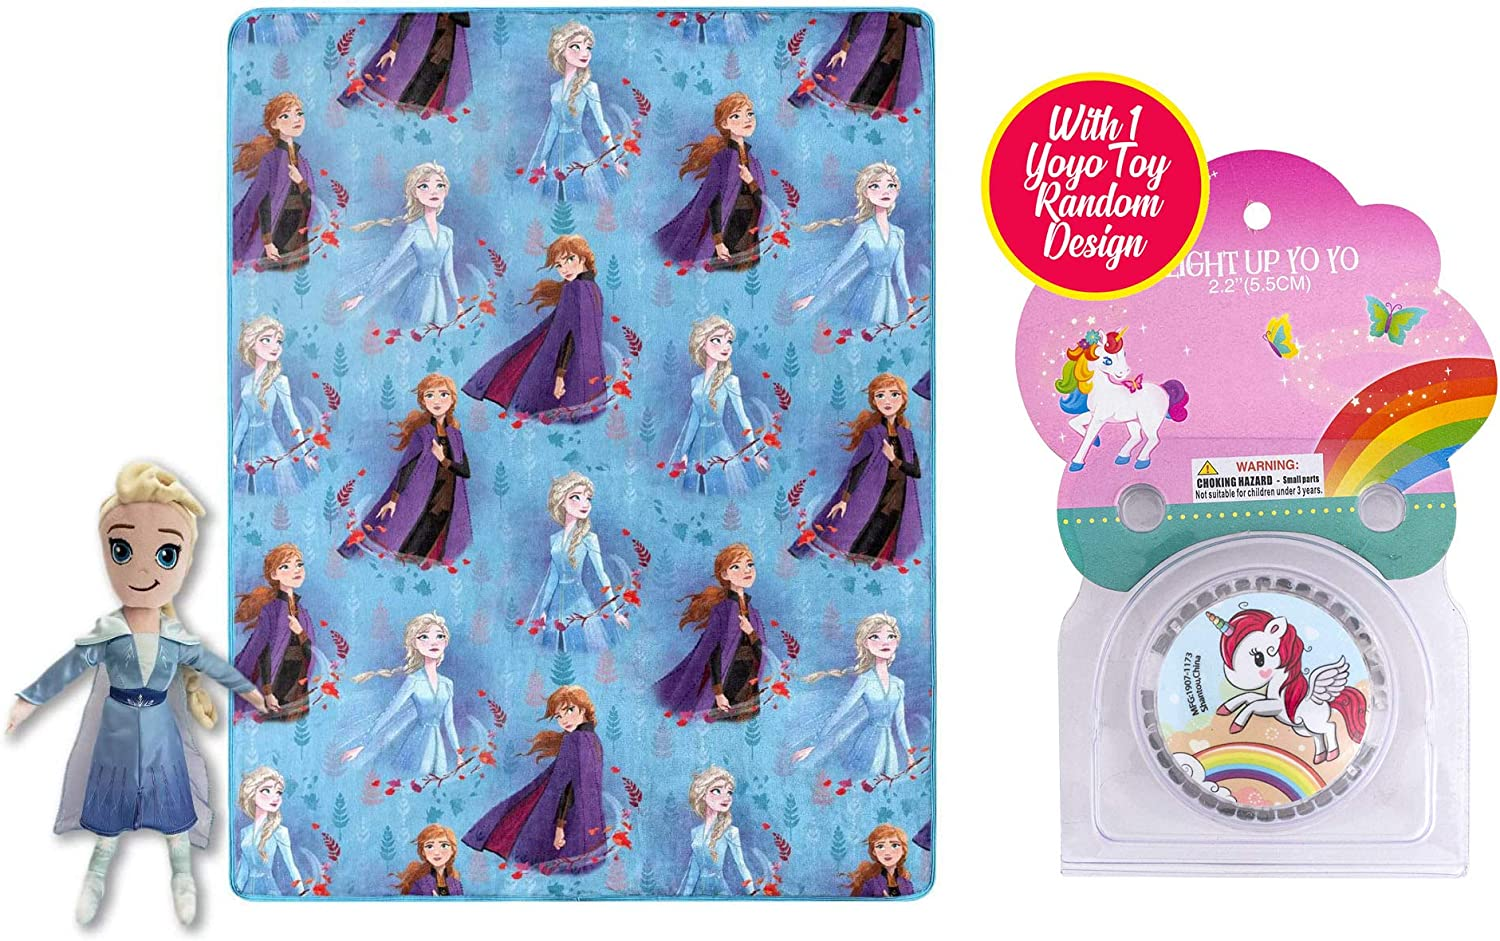 Sister Novelties Kids Character Pillow with Matching Throw Blanket Bundle with 1 Random Light Up Yoyo Toy, Gift Ideas for Children (Frozen 2 Elsa)